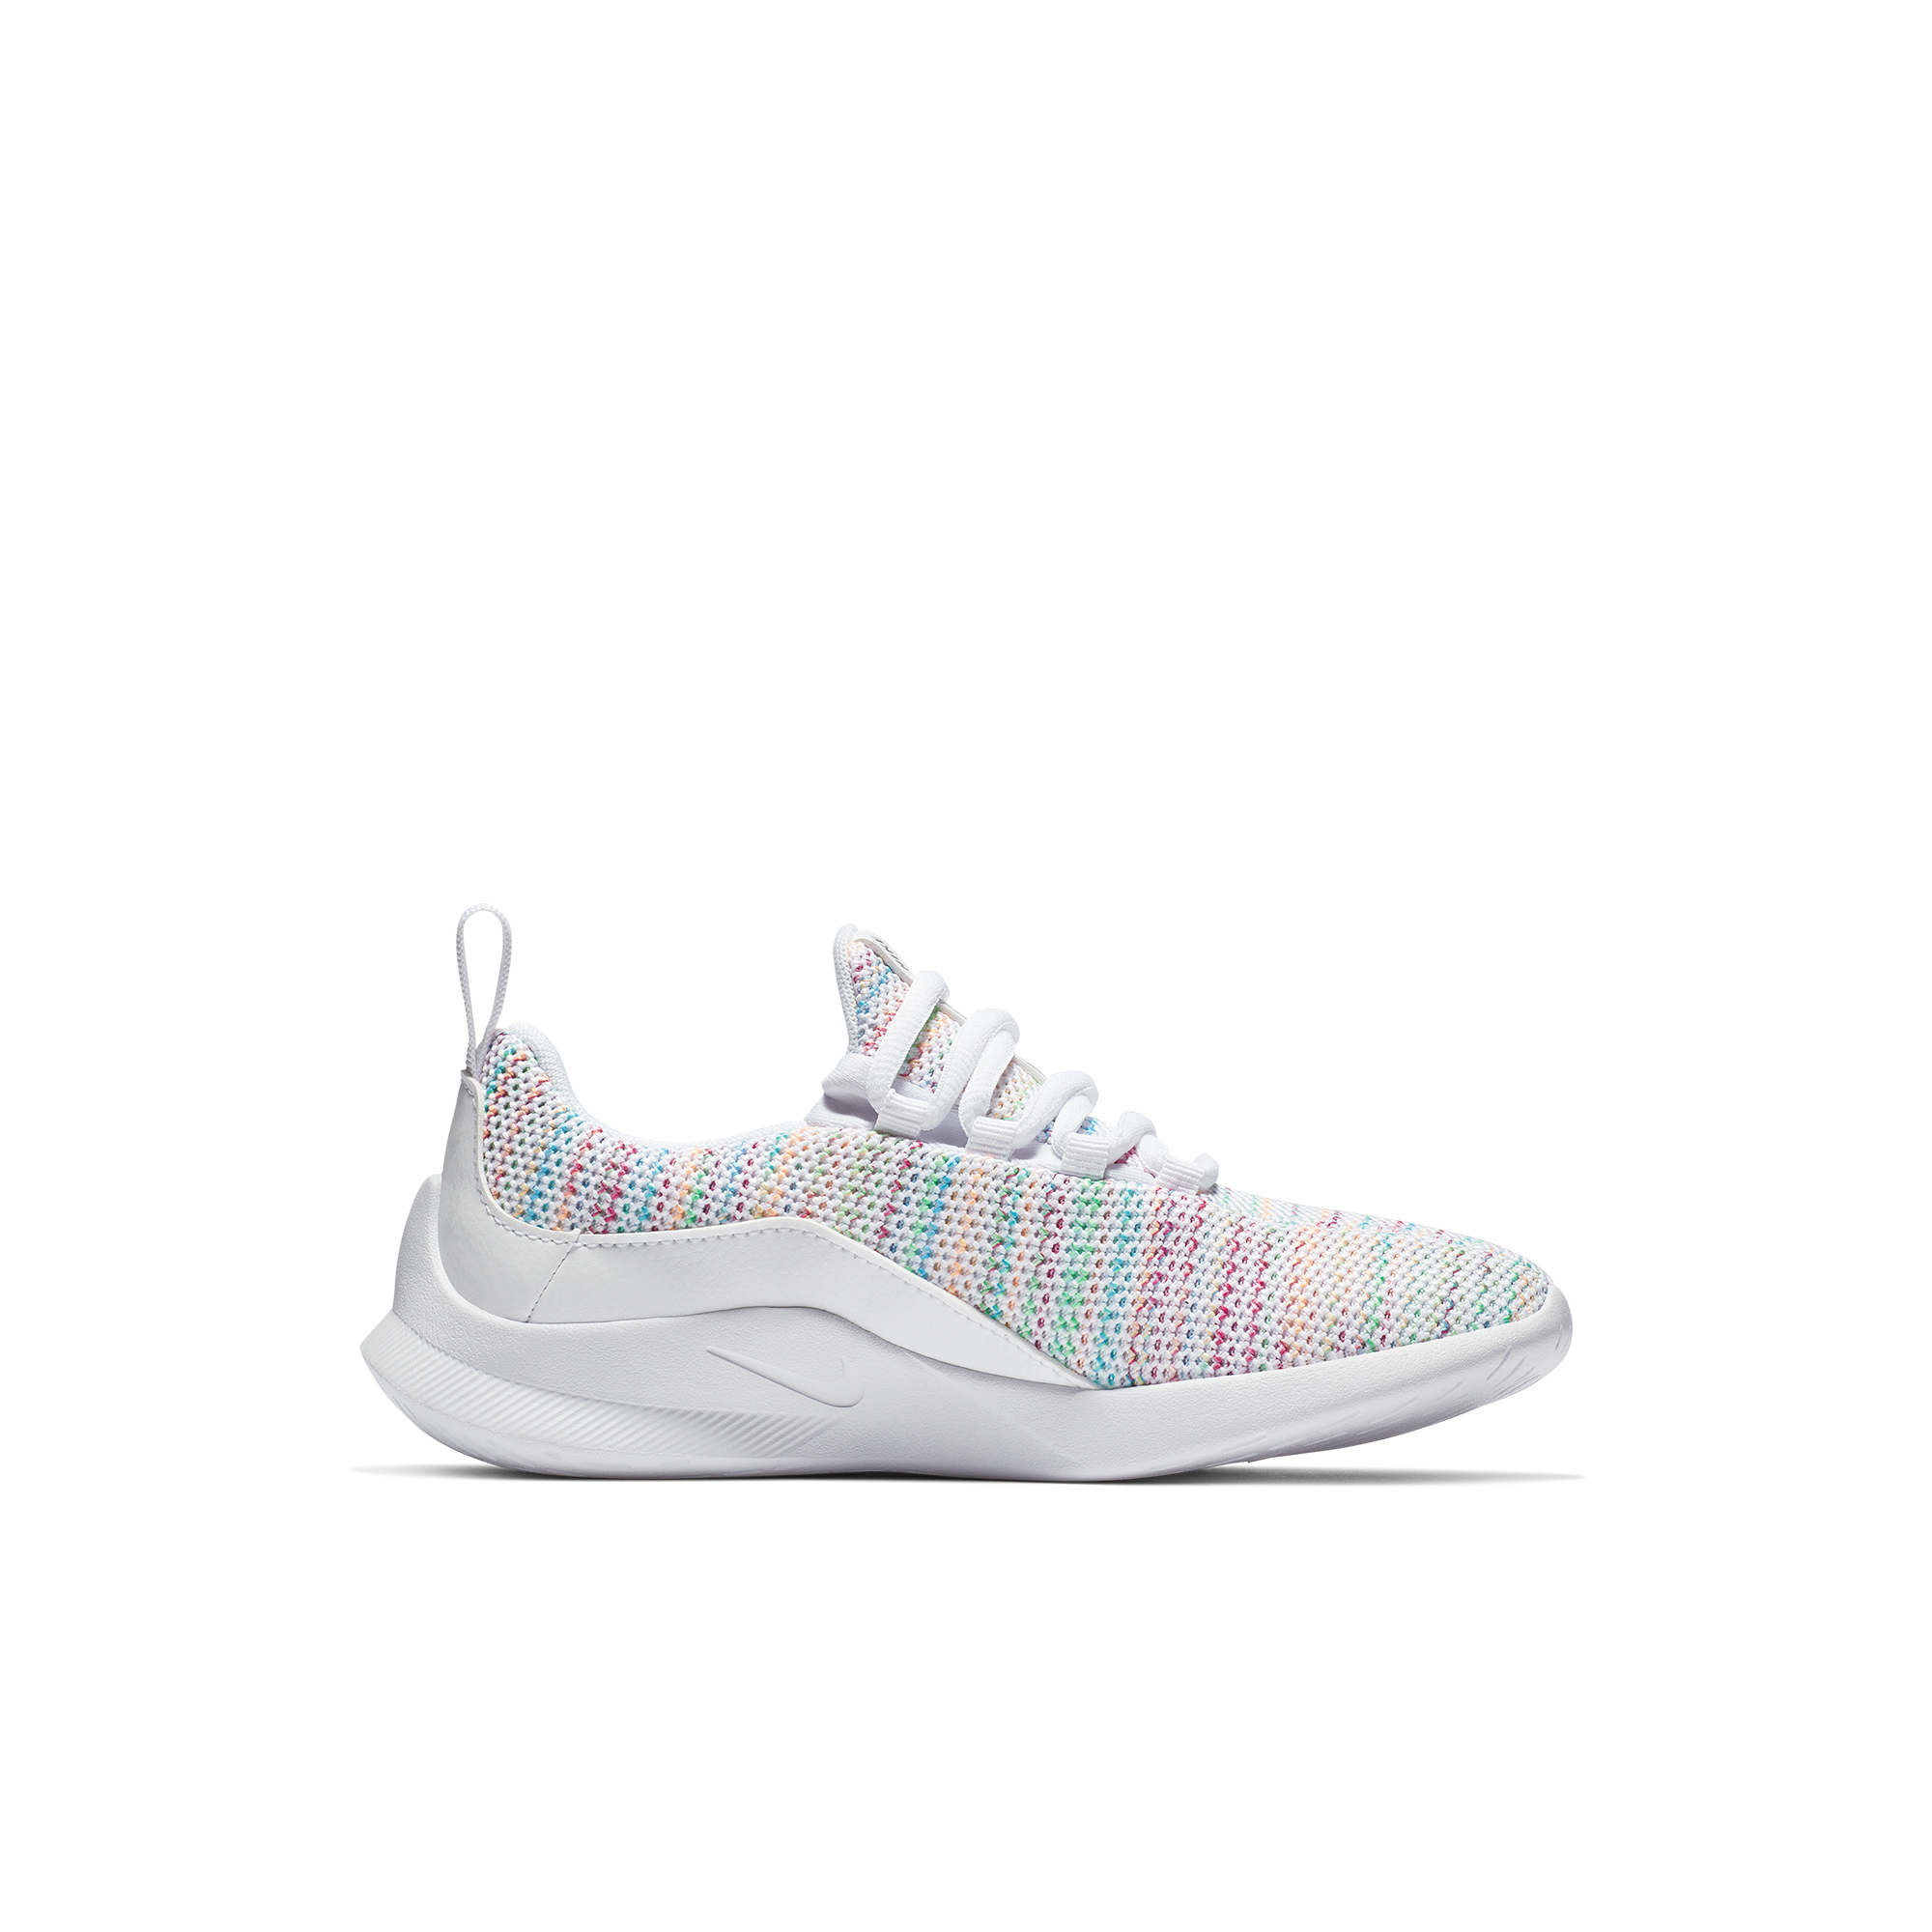 9f1d24005fa3 NIKE VIALE SPACE DYE (PS) New Arrival Toddler Motion Children s Shoes  Comfortable Running Sneakers  BQ7562 100-in Sneakers from Mother   Kids on  ...